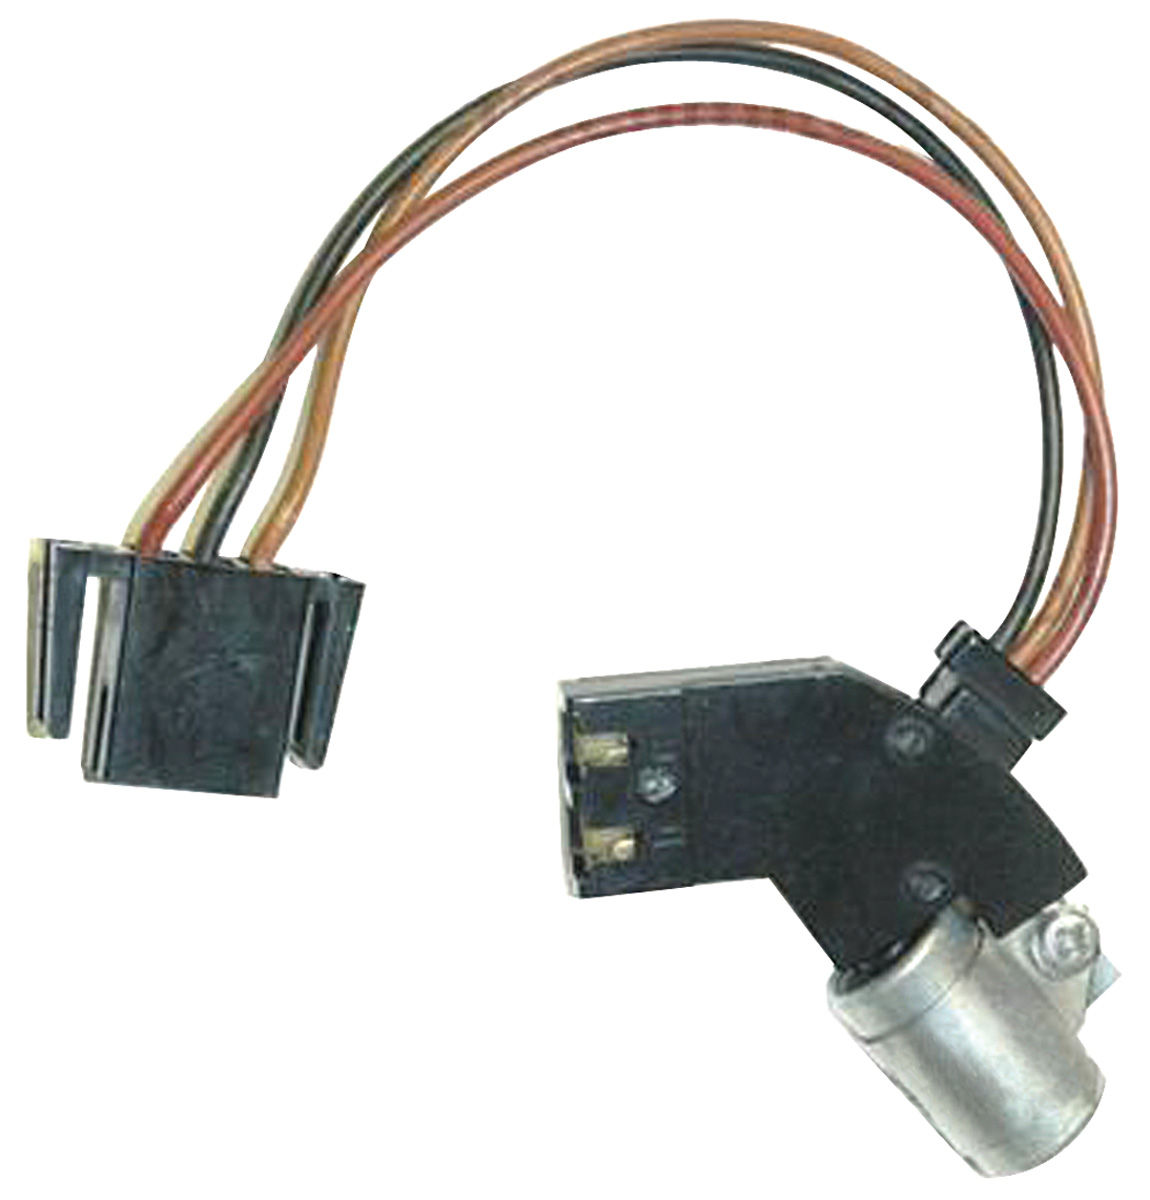 Gm Hei Distributor Wiring Harness Opinions About Diagram Electronic Wire 72 Chevy Get Free Image